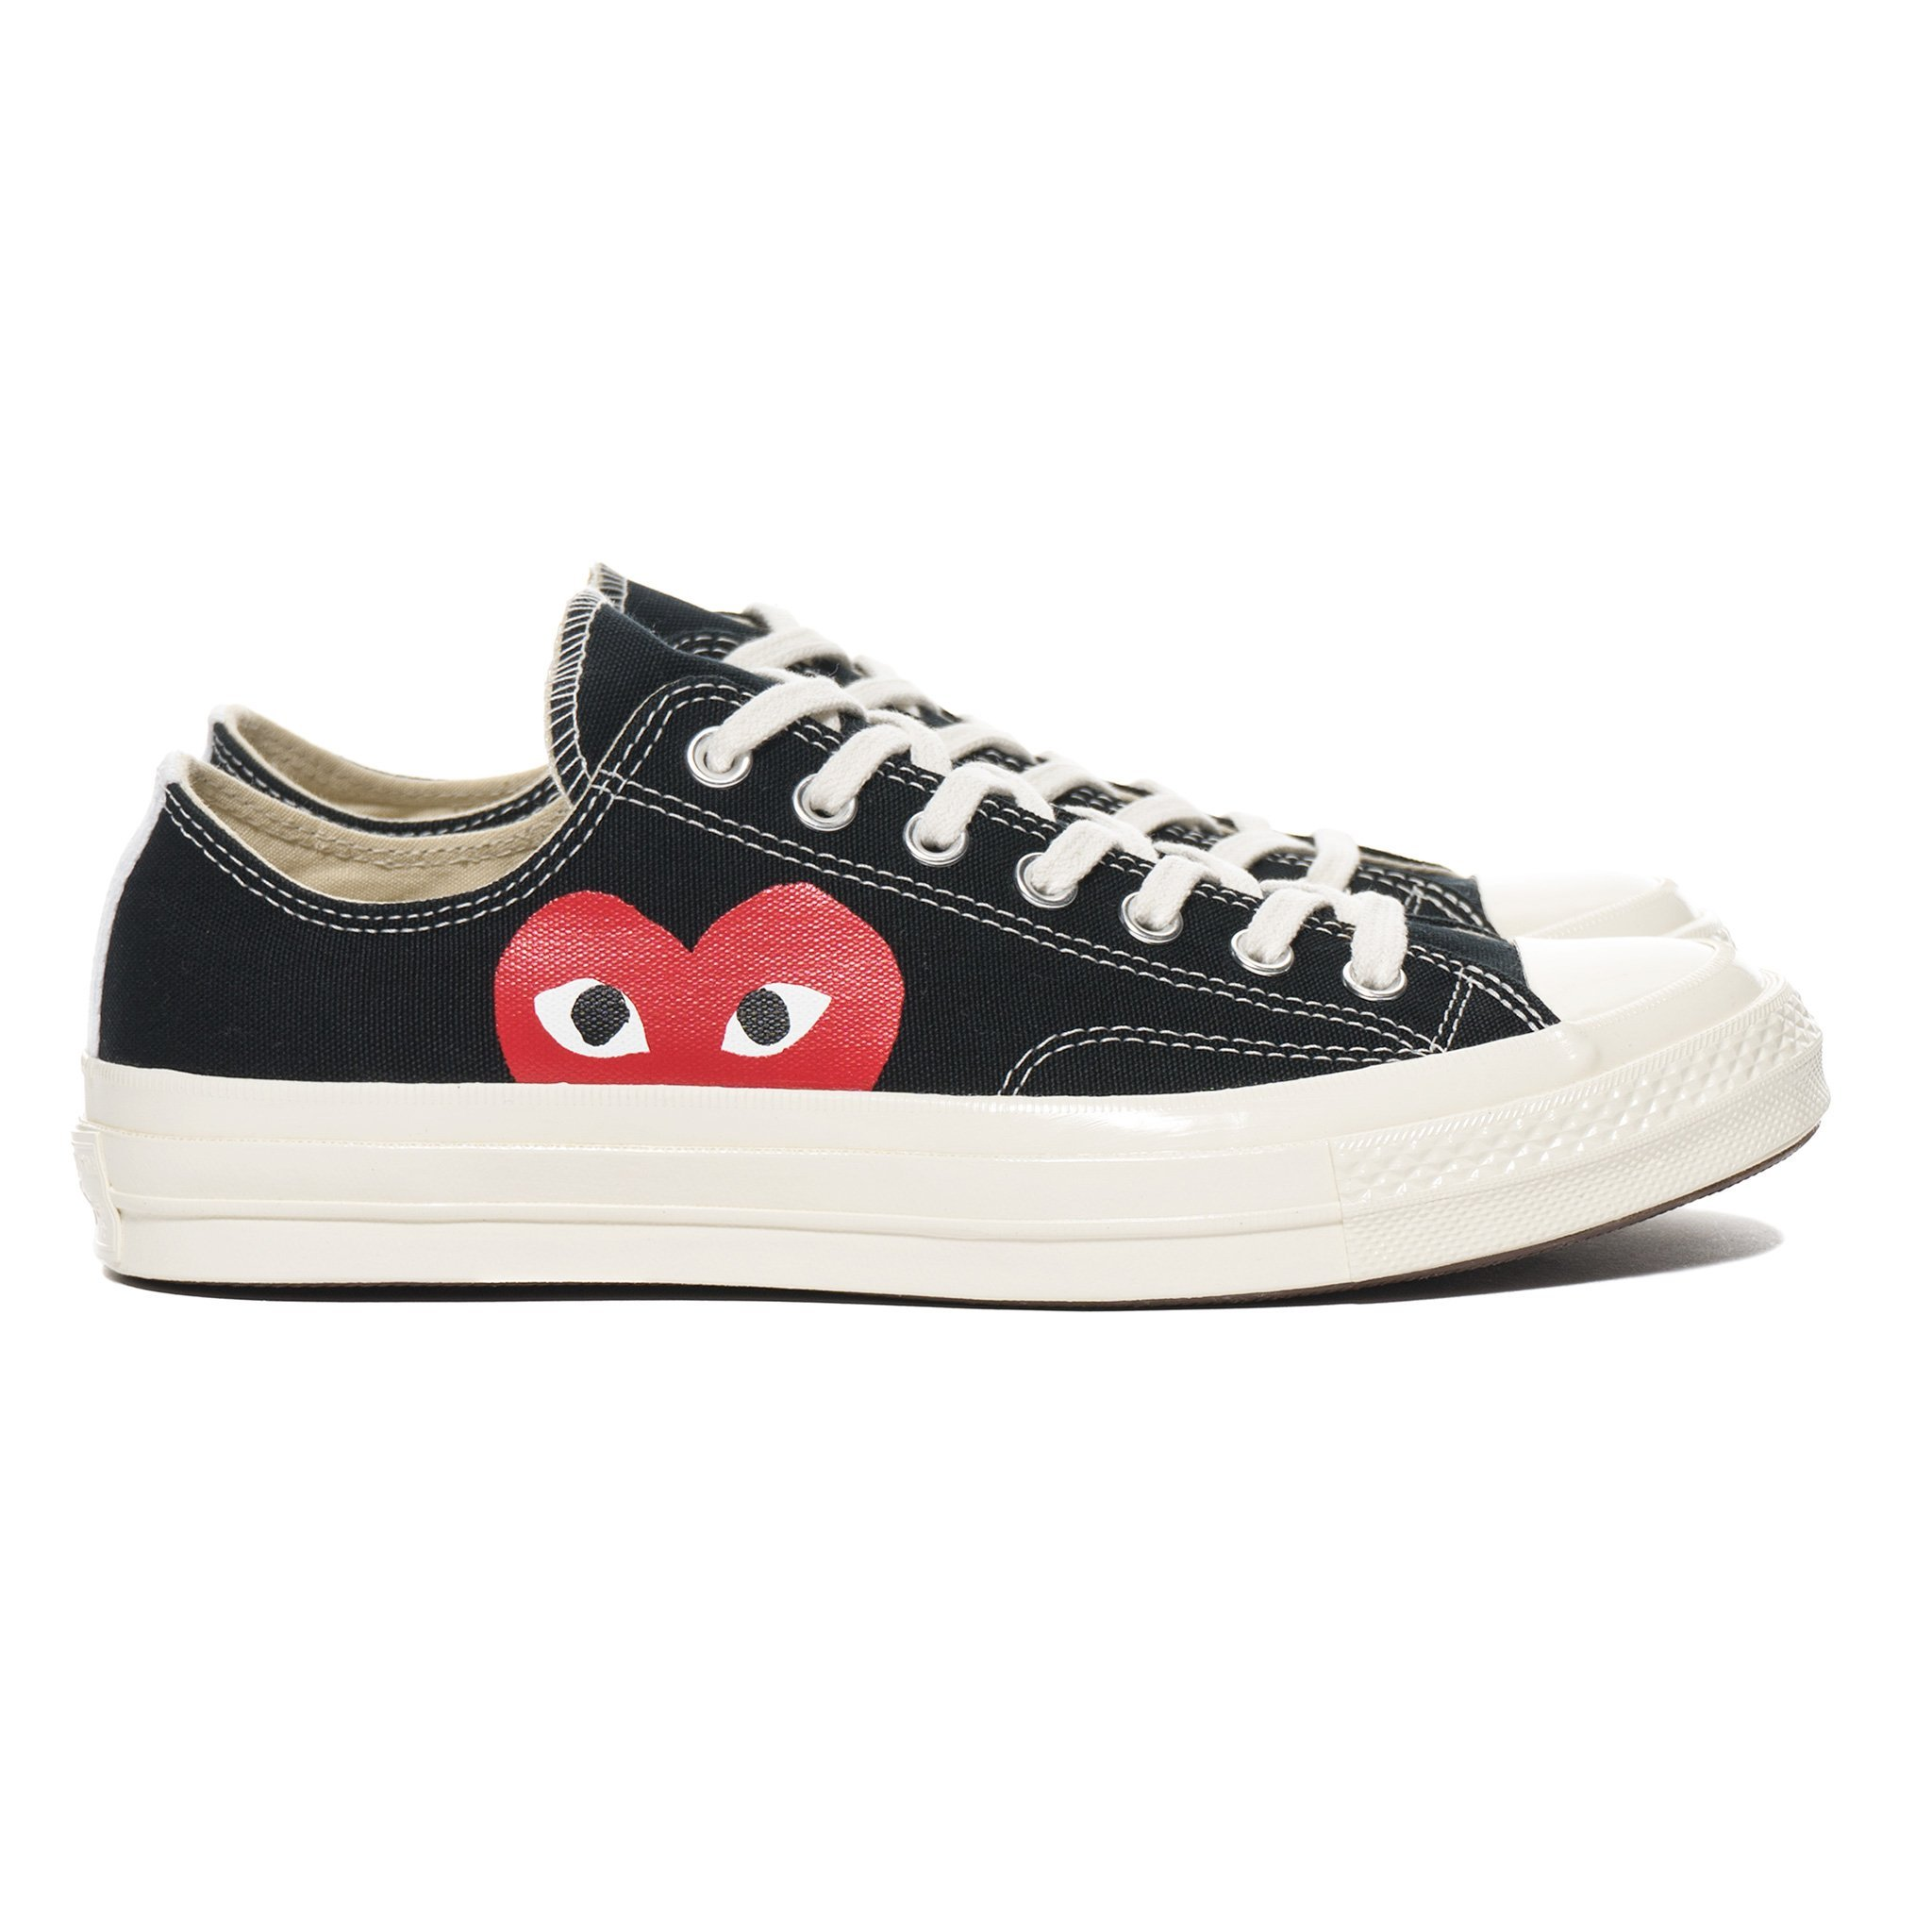 32a23eeb5284ec Converse Converse x CDG Comme Des Garcons Chuck Taylor All Star 70 Low Half  Heart Size 8 US Size 8 - Low-Top Sneakers for Sale - Grailed